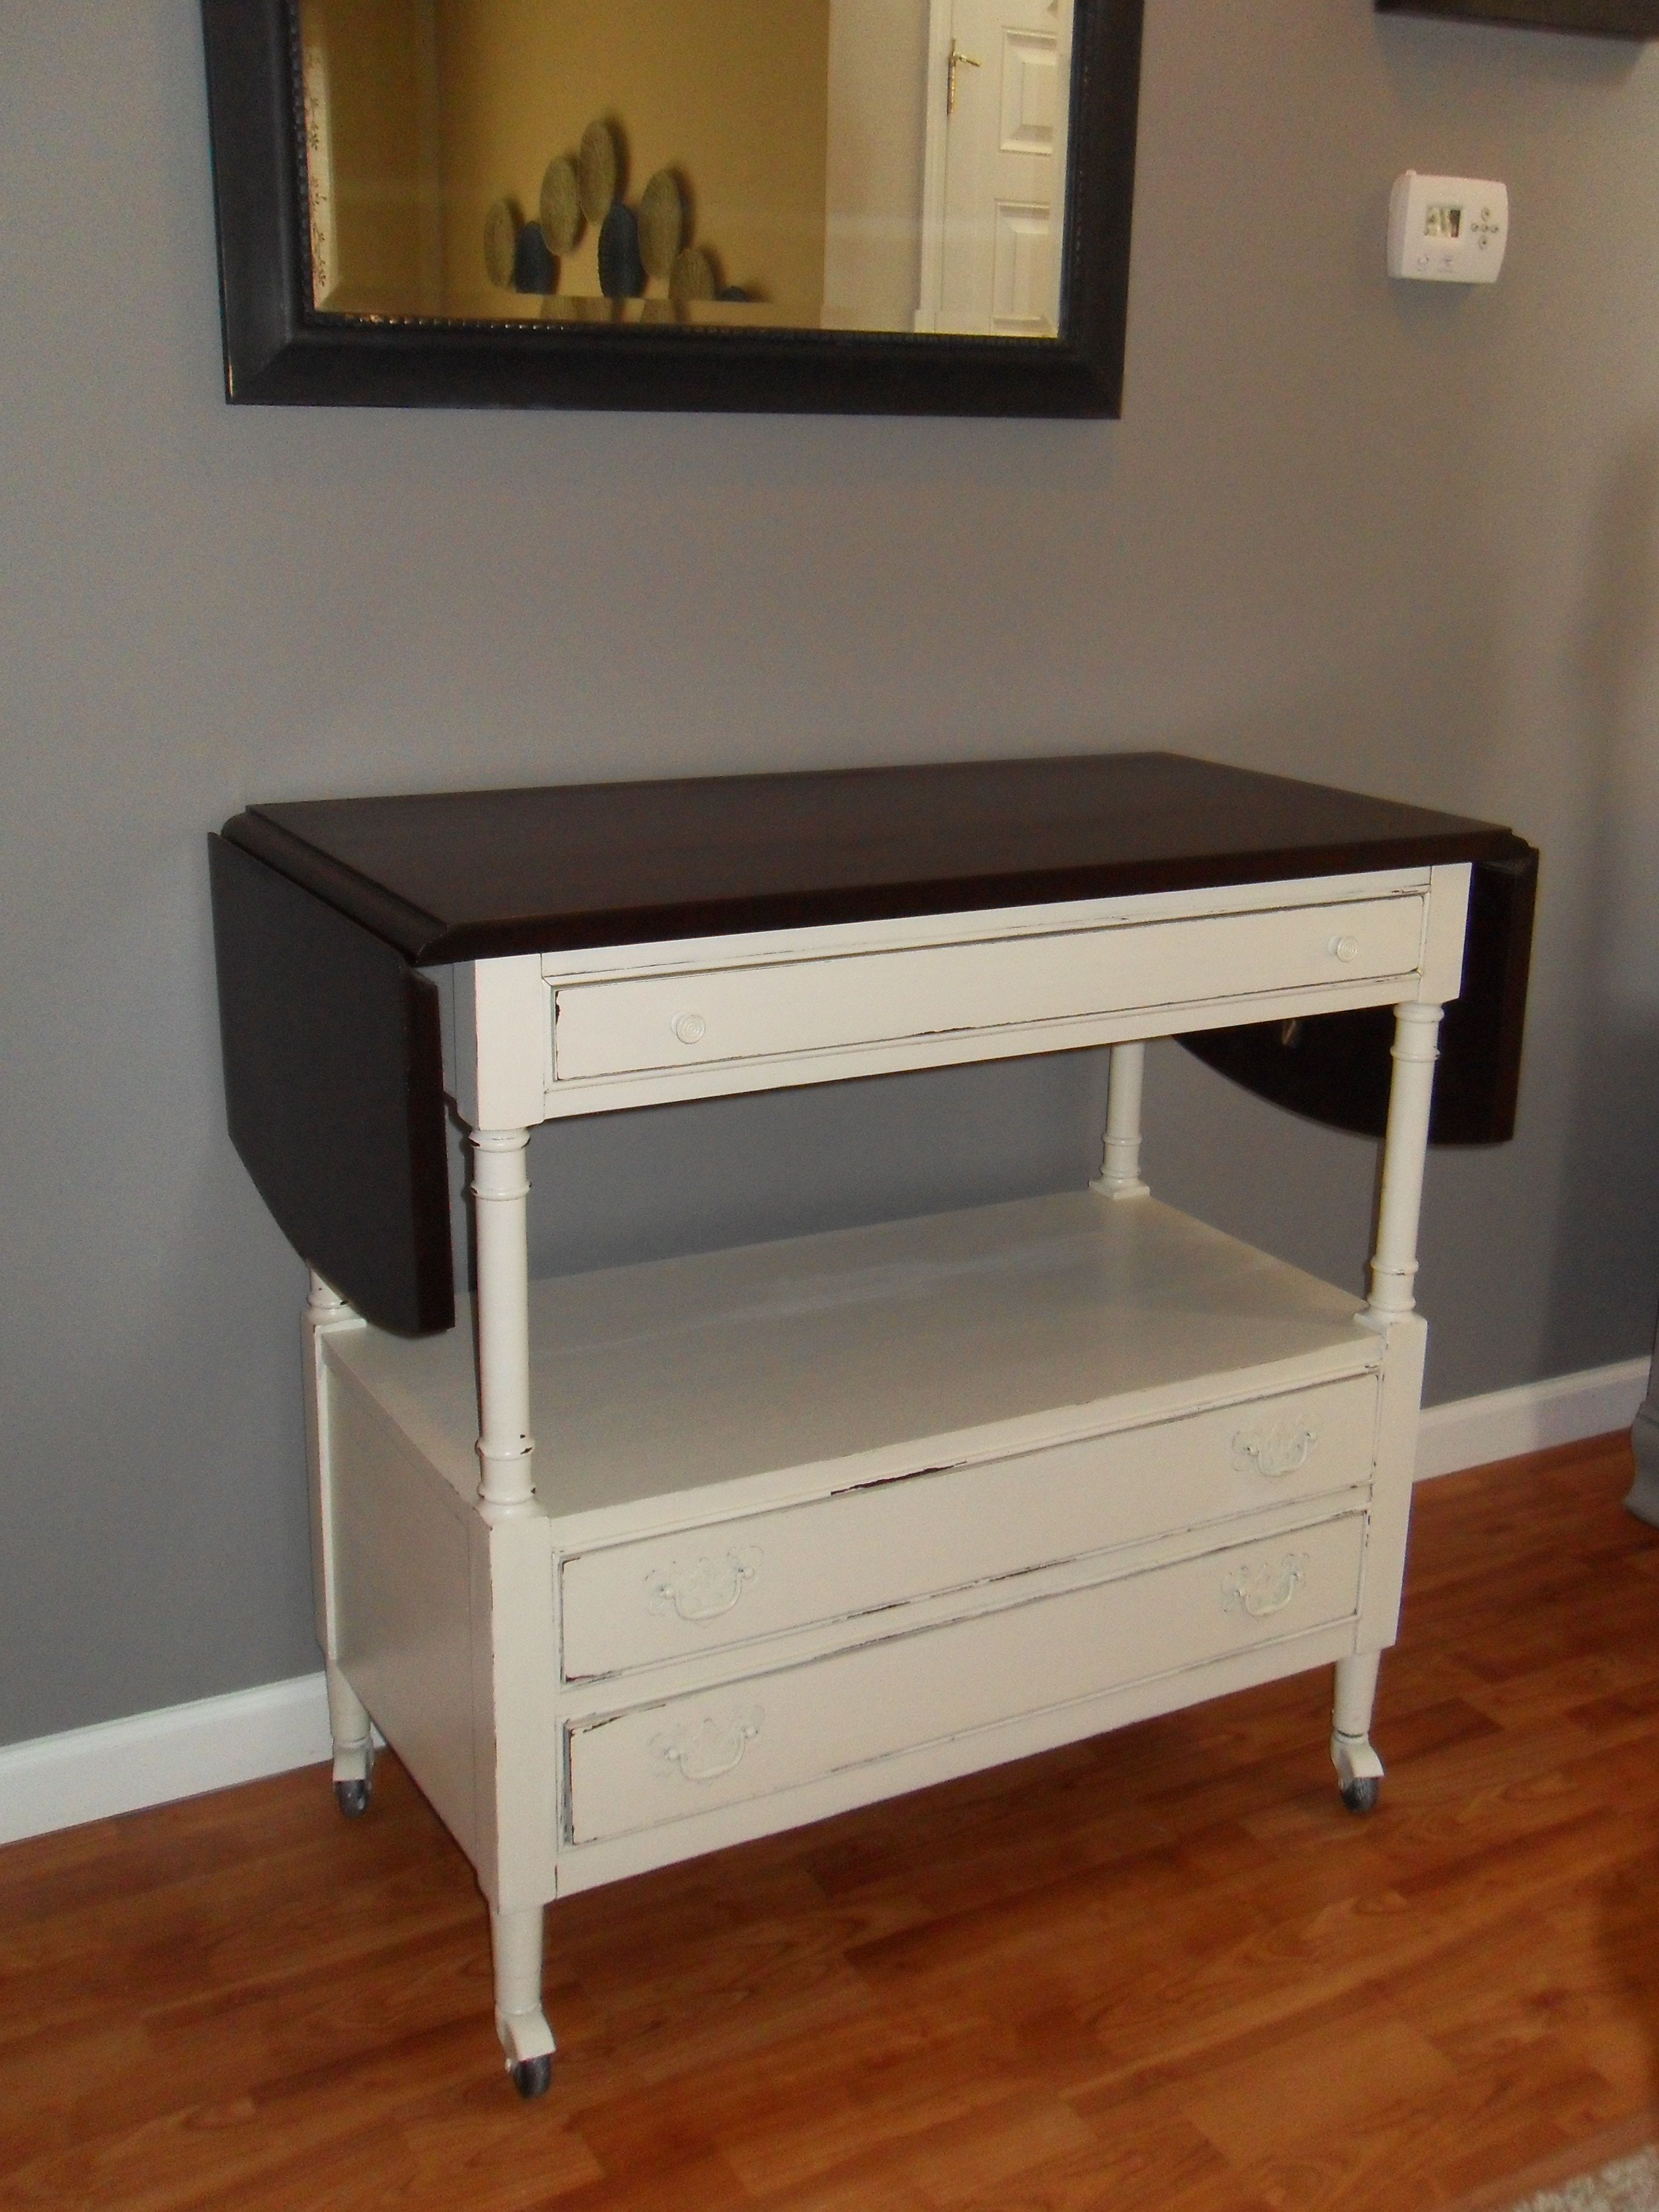 Server buffet painted with General Finishes Antique White and the